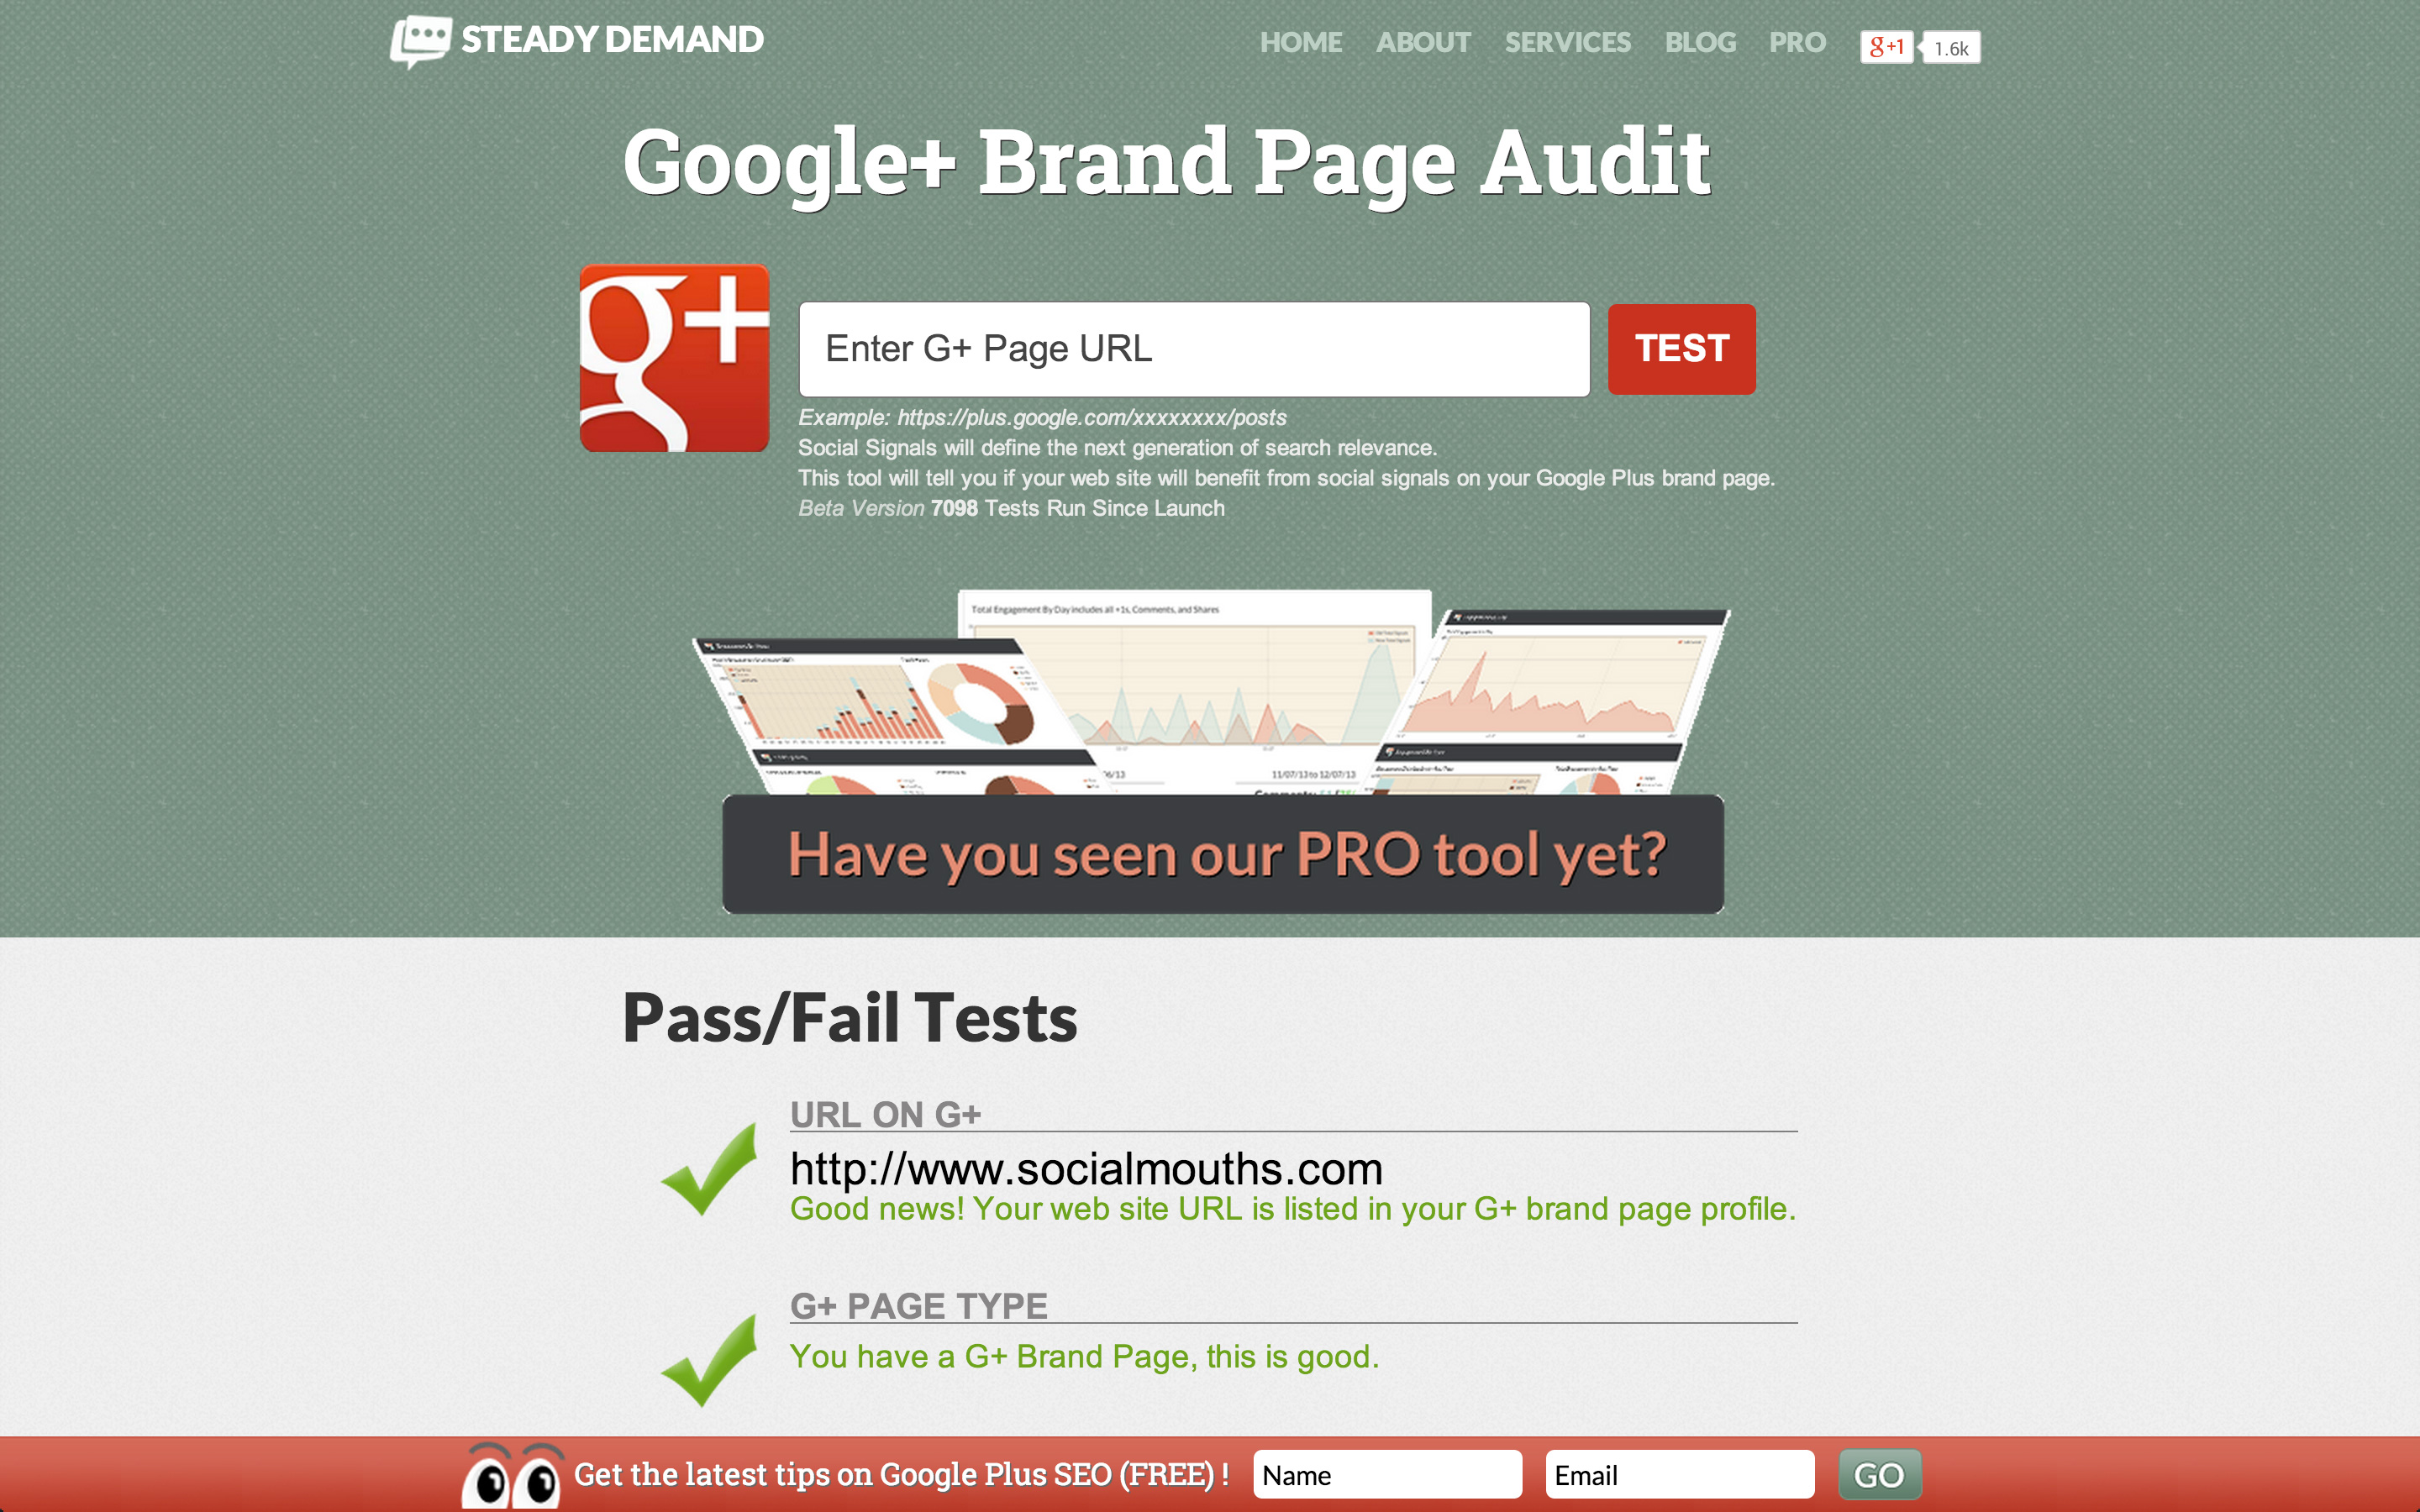 Google+ Brand Page Audit